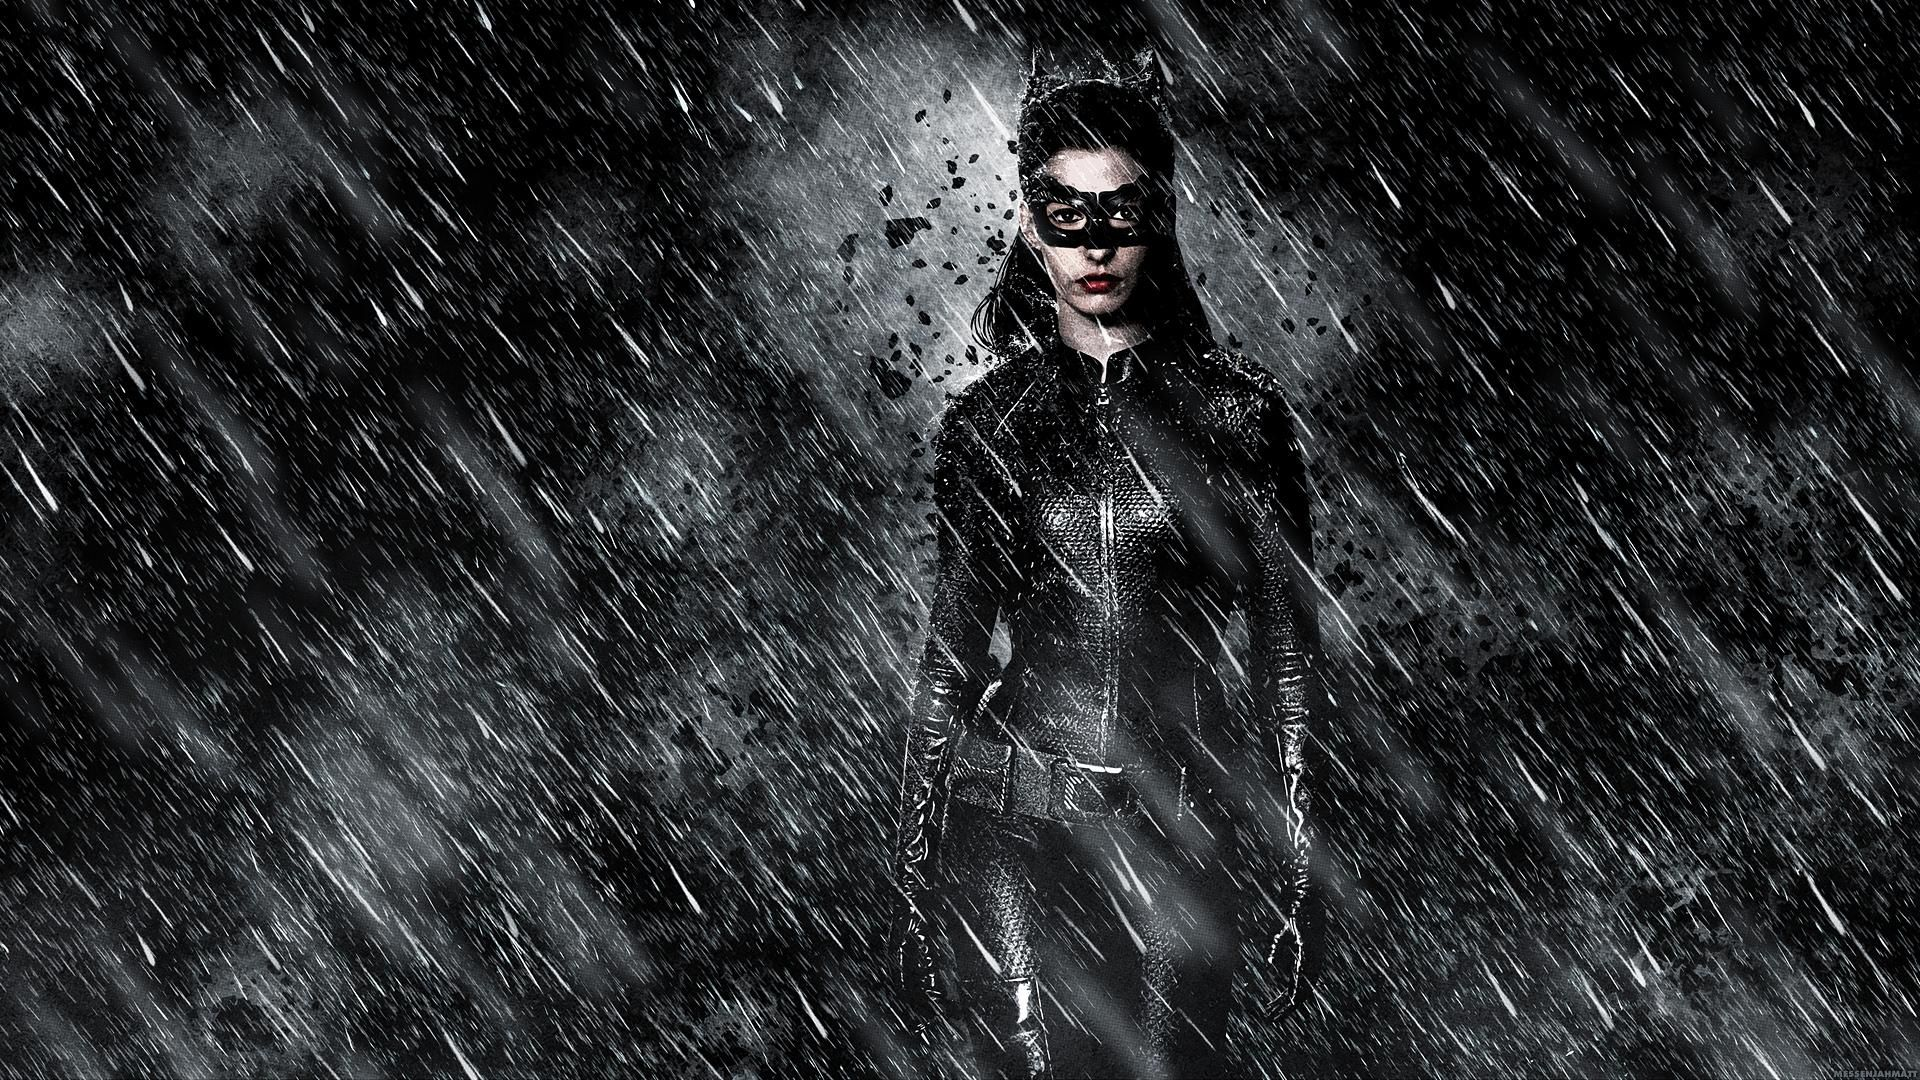 Catwoman dark knight rises wallpaper free wallpapers catwoman dark knight rises wallpaper voltagebd Image collections